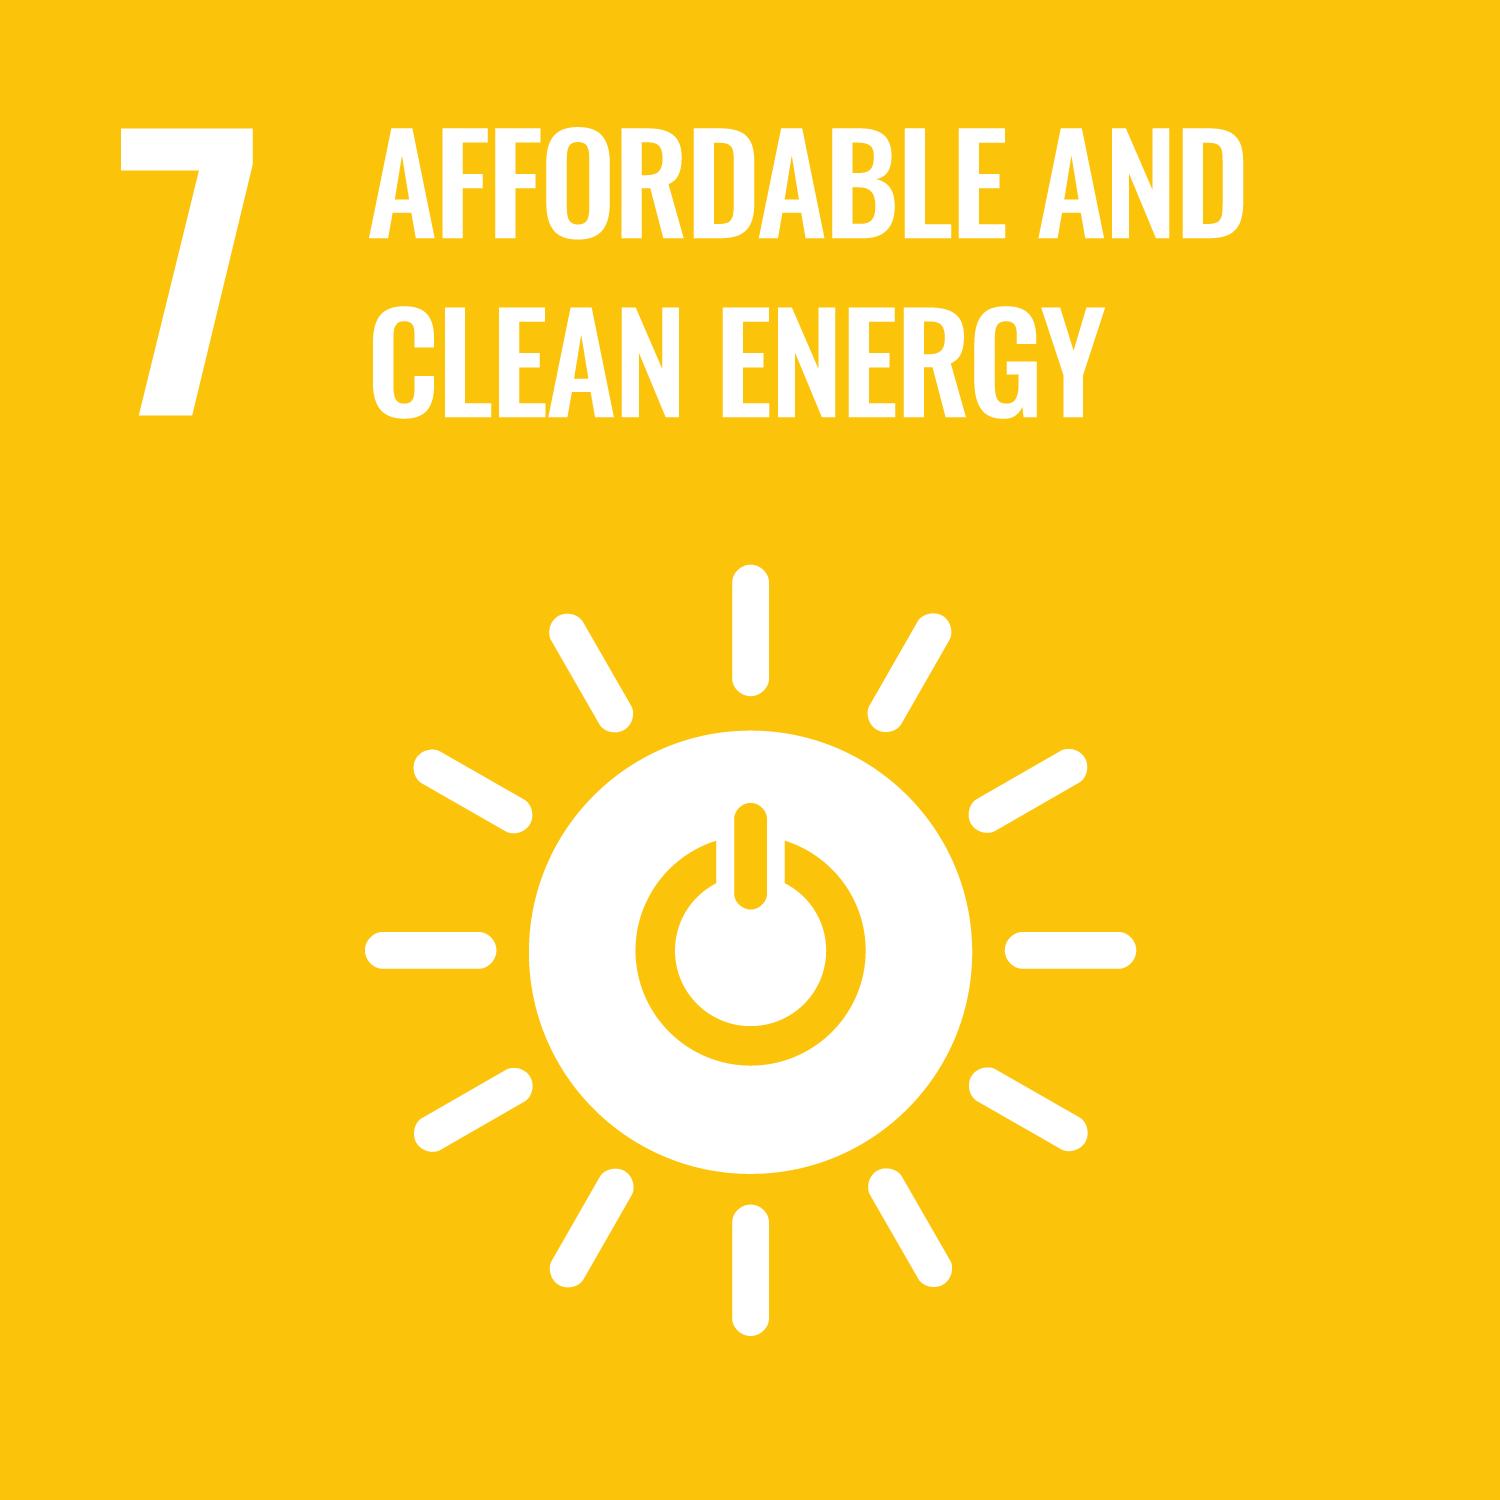 7. Affordable and clean energy To reduce the impact on the environment, we must use renewable energy resources to avoid fossil-fuel based production of energy. How we target this SDG? Our homes are Zero Net Energy, which produce as much energy through clean, renewable resources as it consumes over the course of a year. ZNE buildings means lower carbon intensity of use and lower emissions, are less vulnerable to the instability of energy prices, and more resilient in extreme weather and natural disasters.